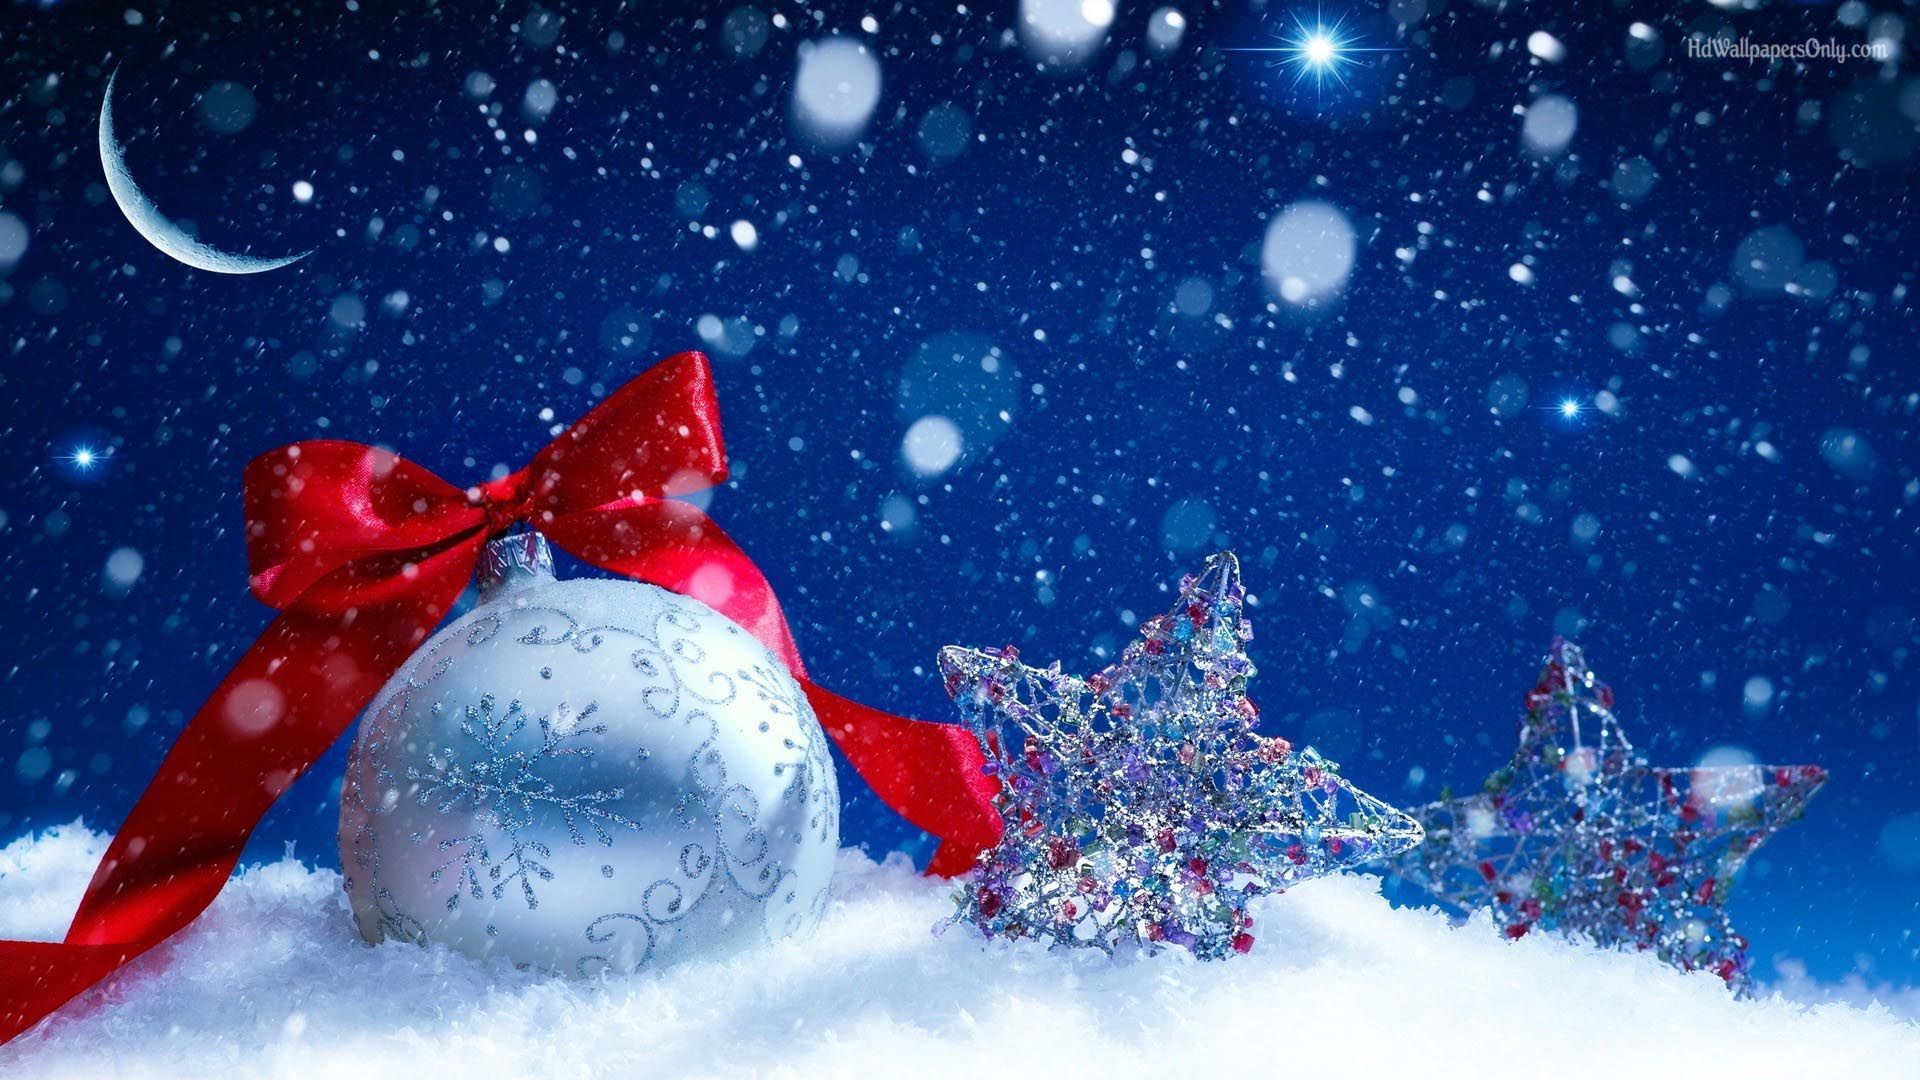 Winter Christmas Wallpapers High Resolution Is Cool Wallpapers